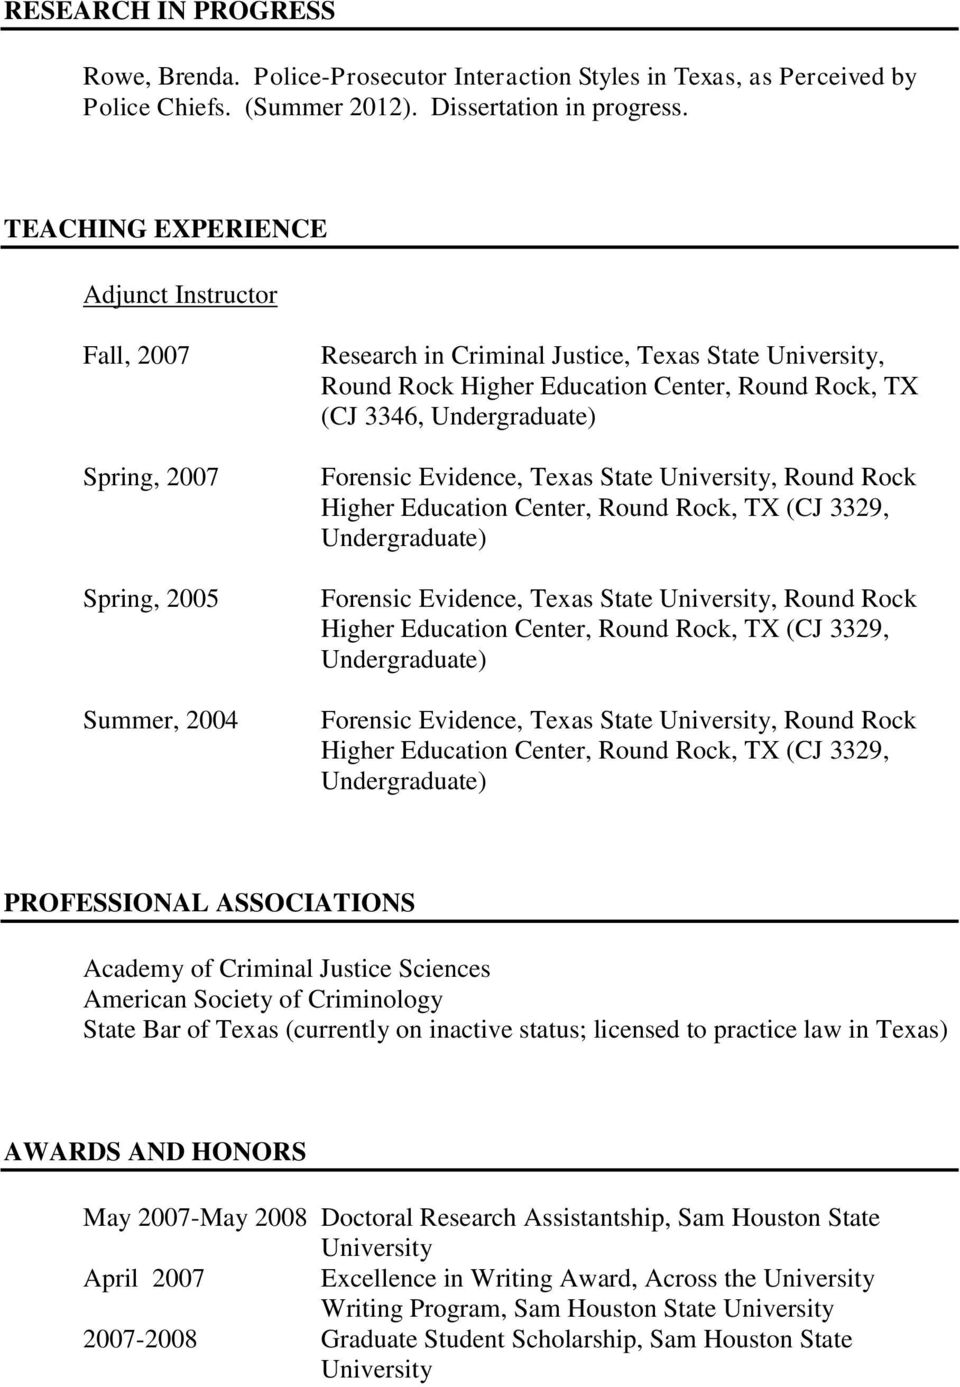 Undergraduate) Forensic Evidence, Texas State, Round Rock Higher Education Center, Round Rock, TX (CJ 3329, Undergraduate) Forensic Evidence, Texas State, Round Rock Higher Education Center, Round